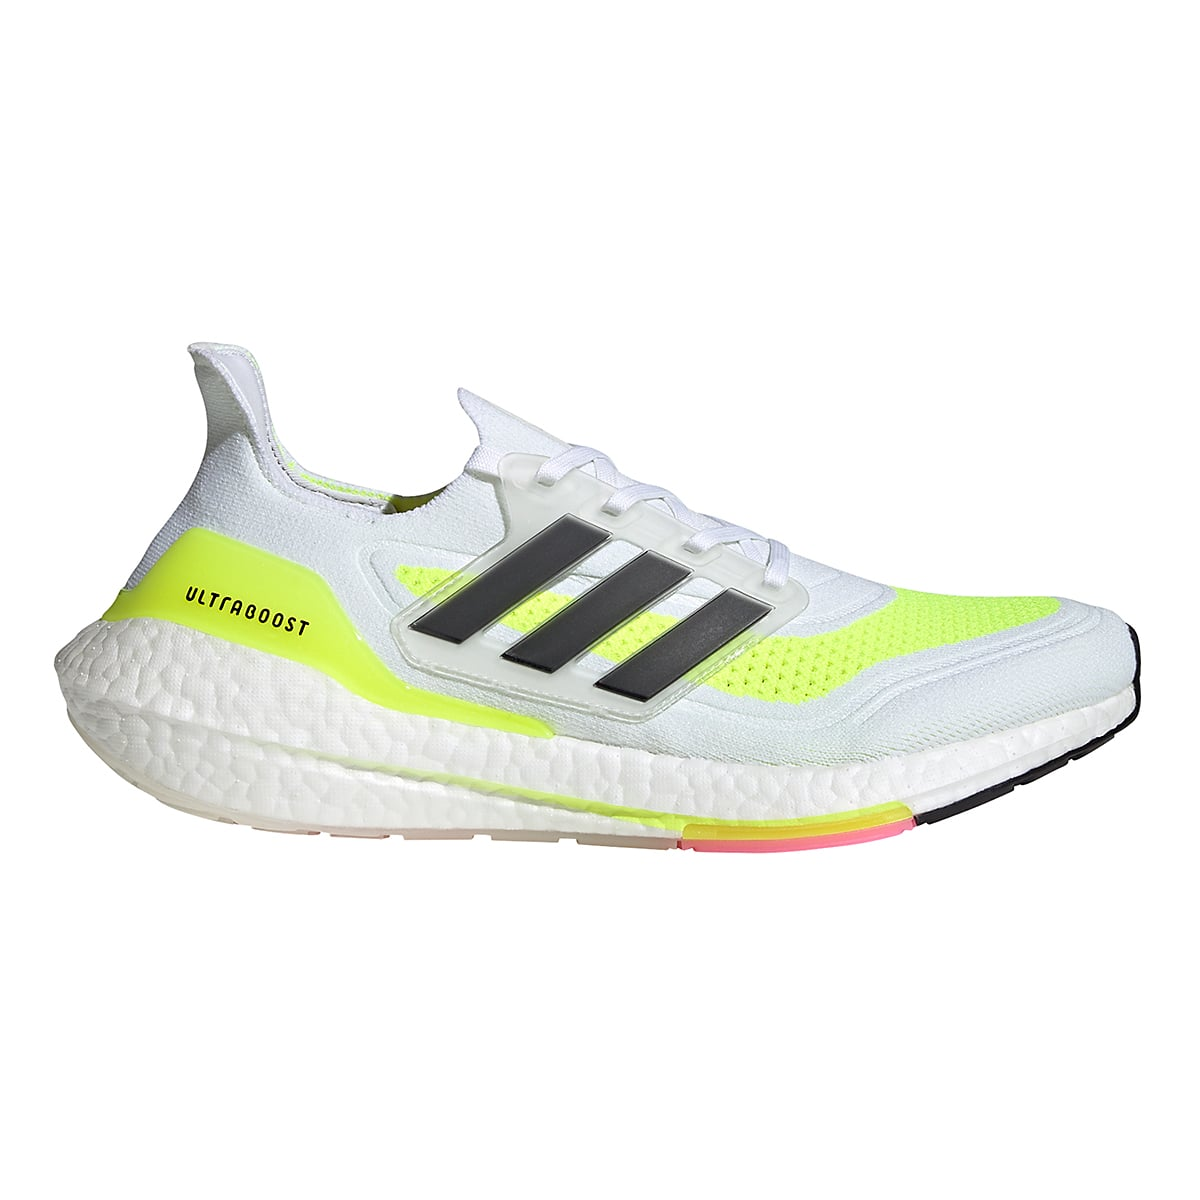 adidas Men's and Women's Ultraboost 21 Running Shoes (Various Colors) $85 + Free S/H